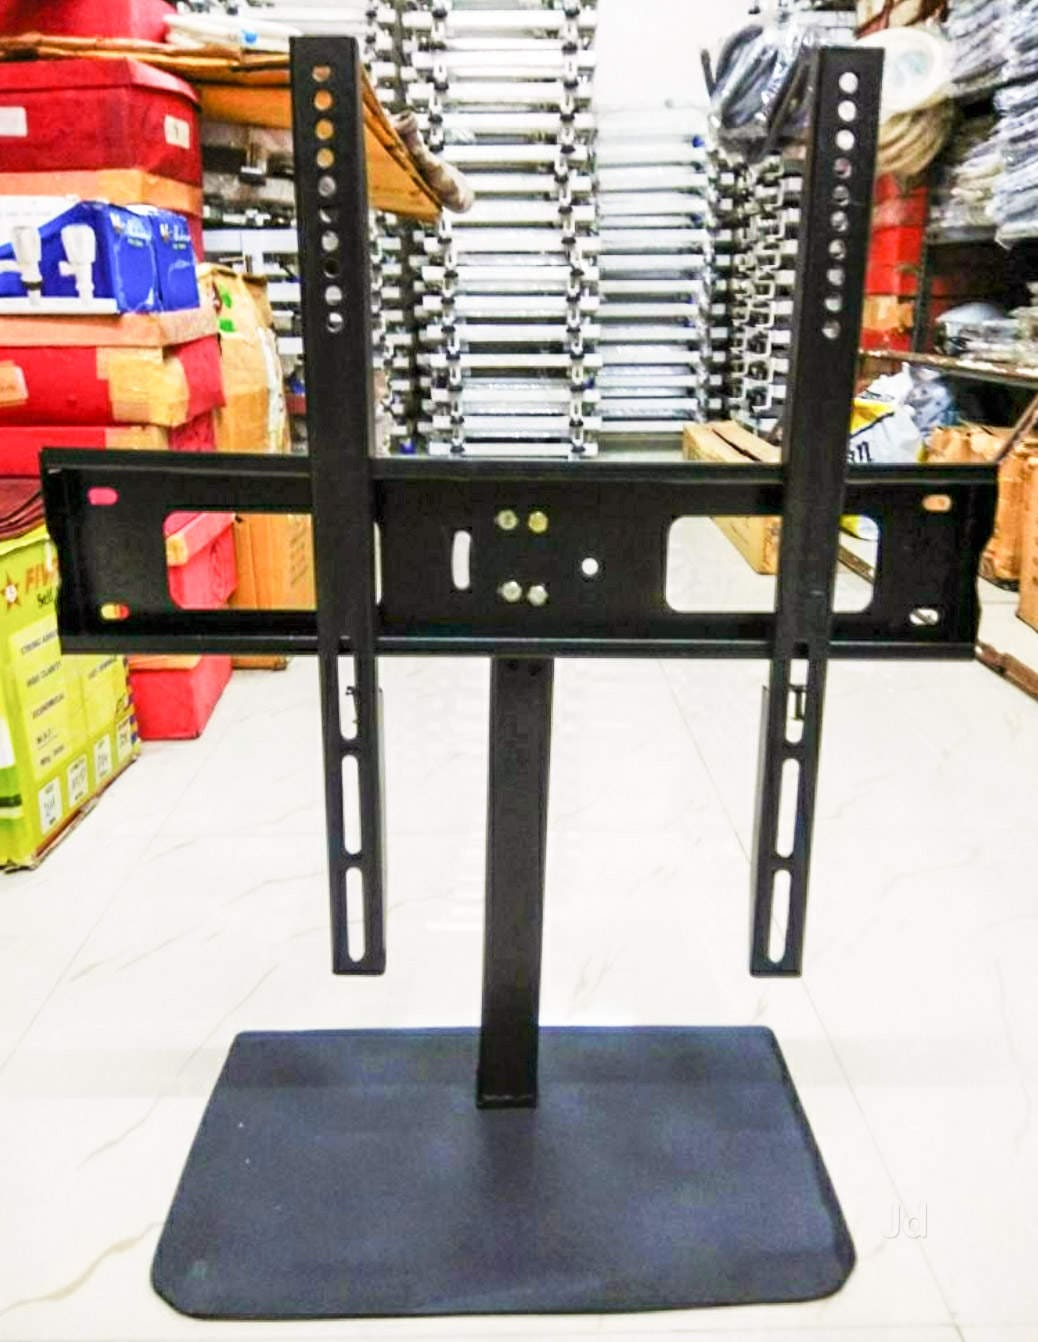 Top 20 Wall Mount Tv Stand Dealers in Hyderabad - Best Wall